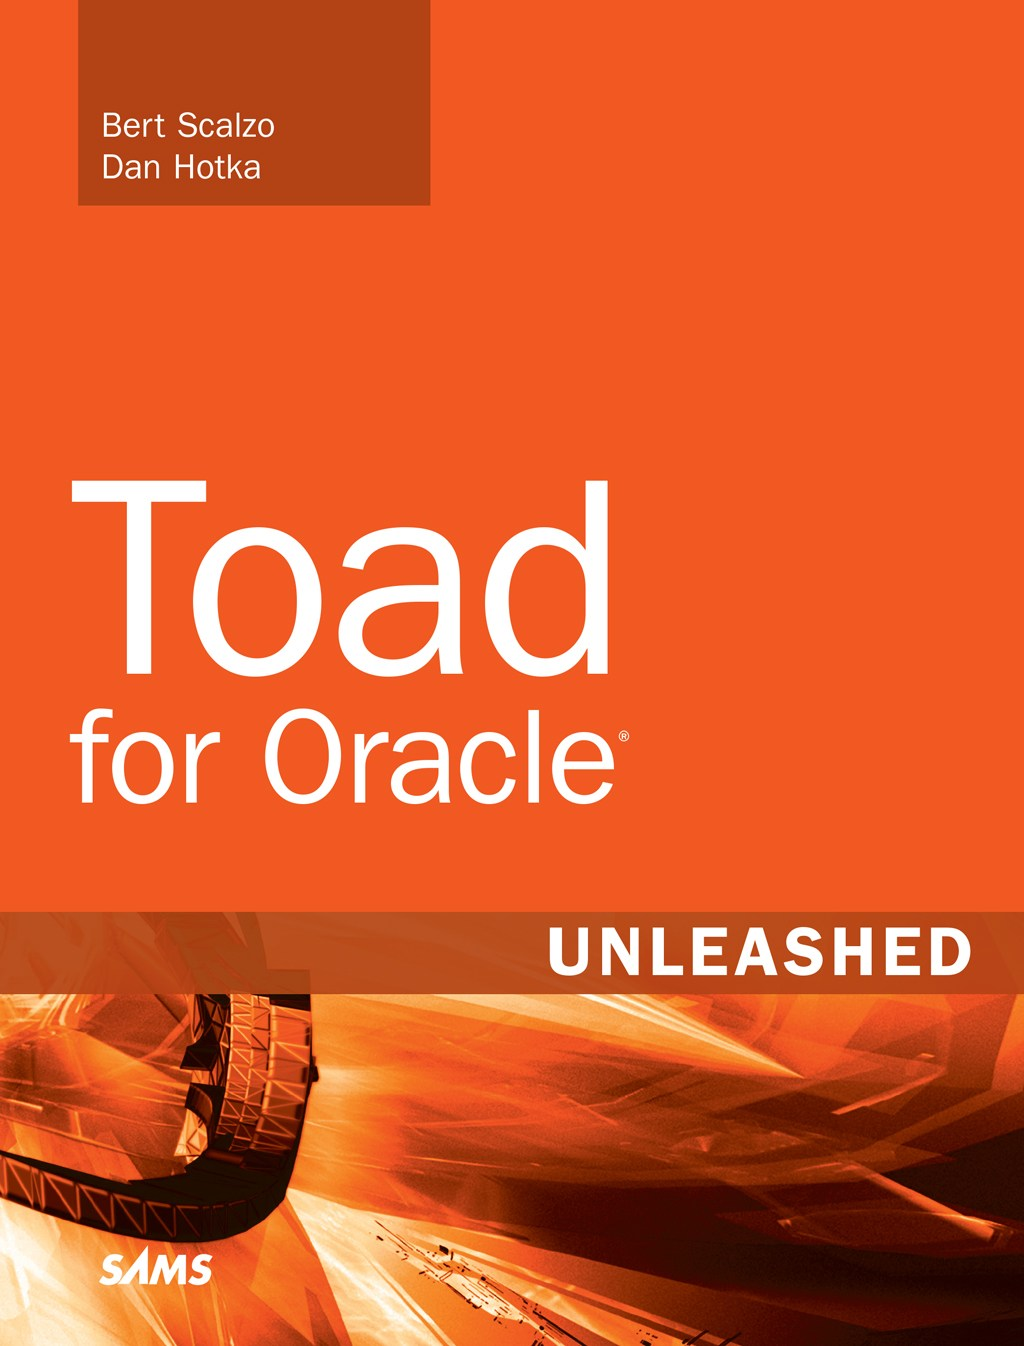 Toad for Oracle Unleashed